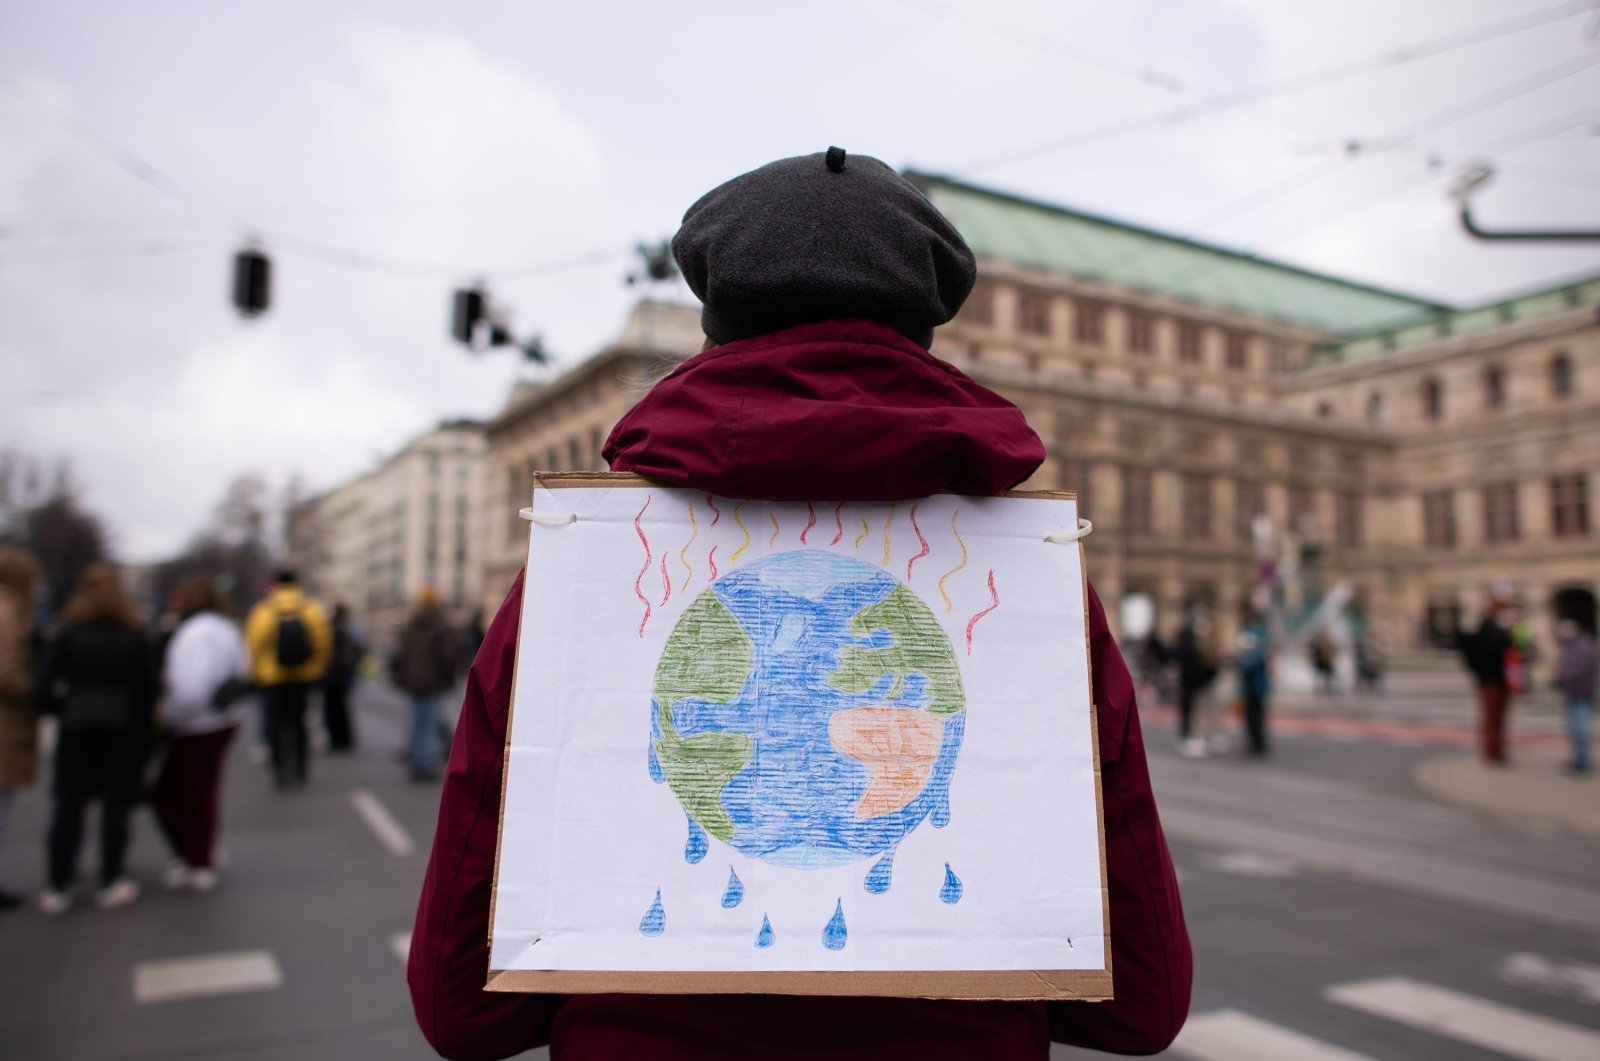 Supporters of the Fridays for Future movement protest to demand effective measures against global warming and climate change in Vienna, Austria, March 19, 2021. (Getty Images)